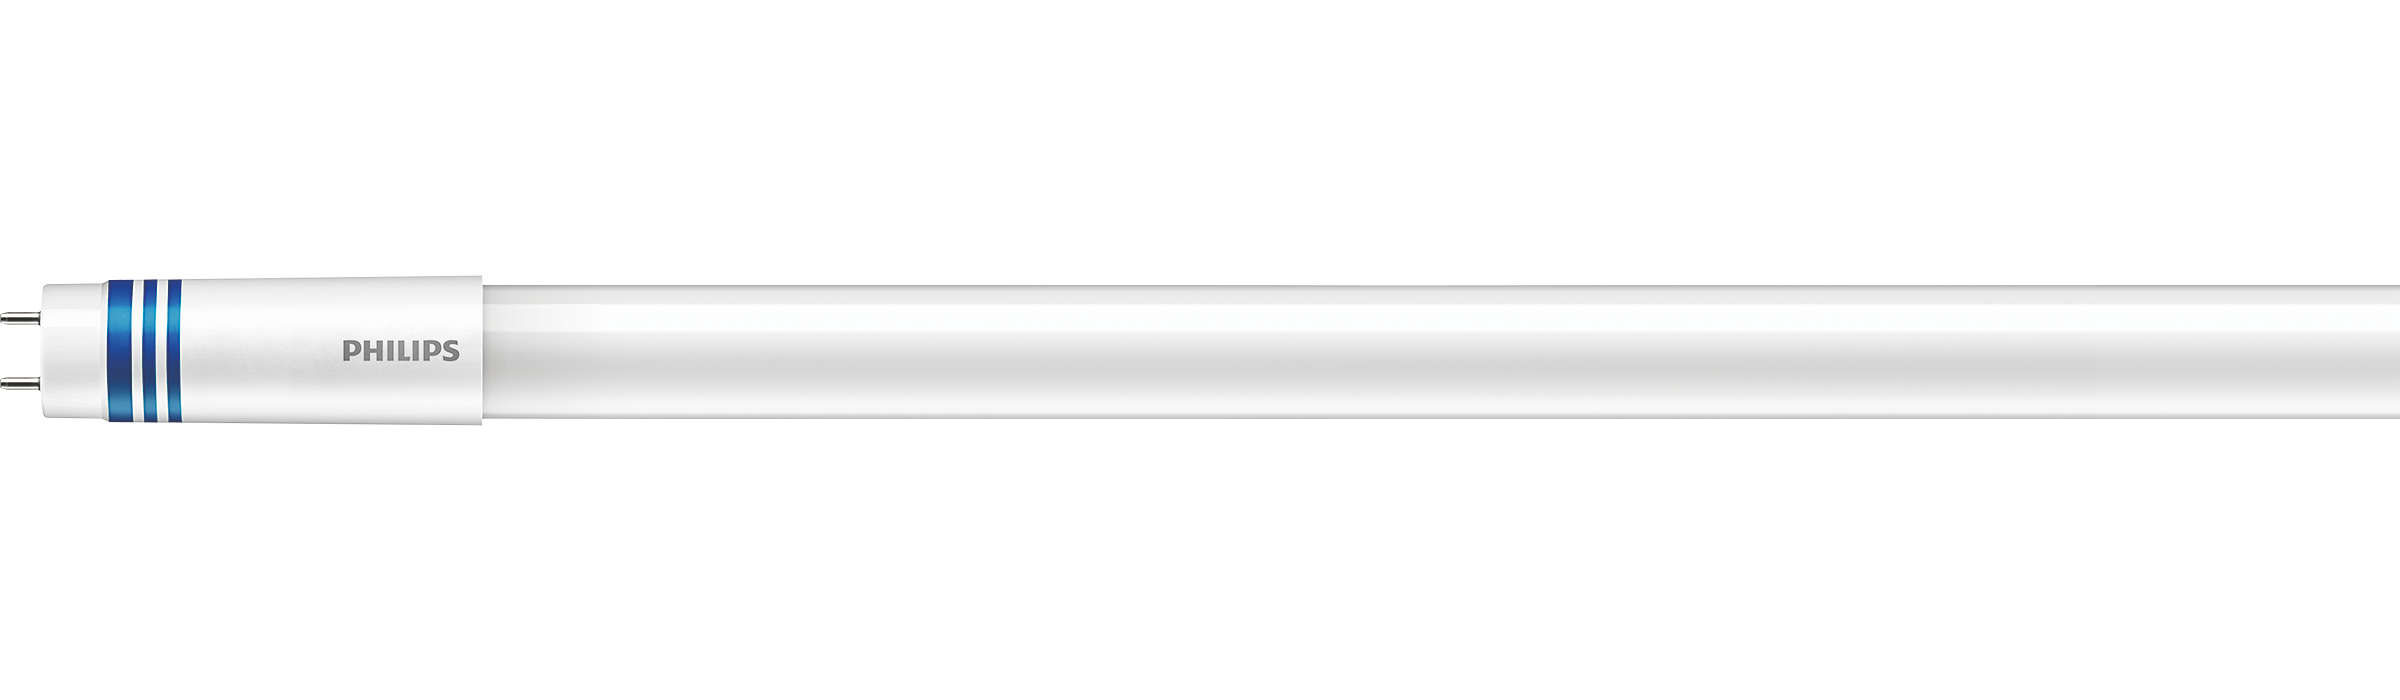 Universal T8 LEDtube lighting is now easier and simpler than ever